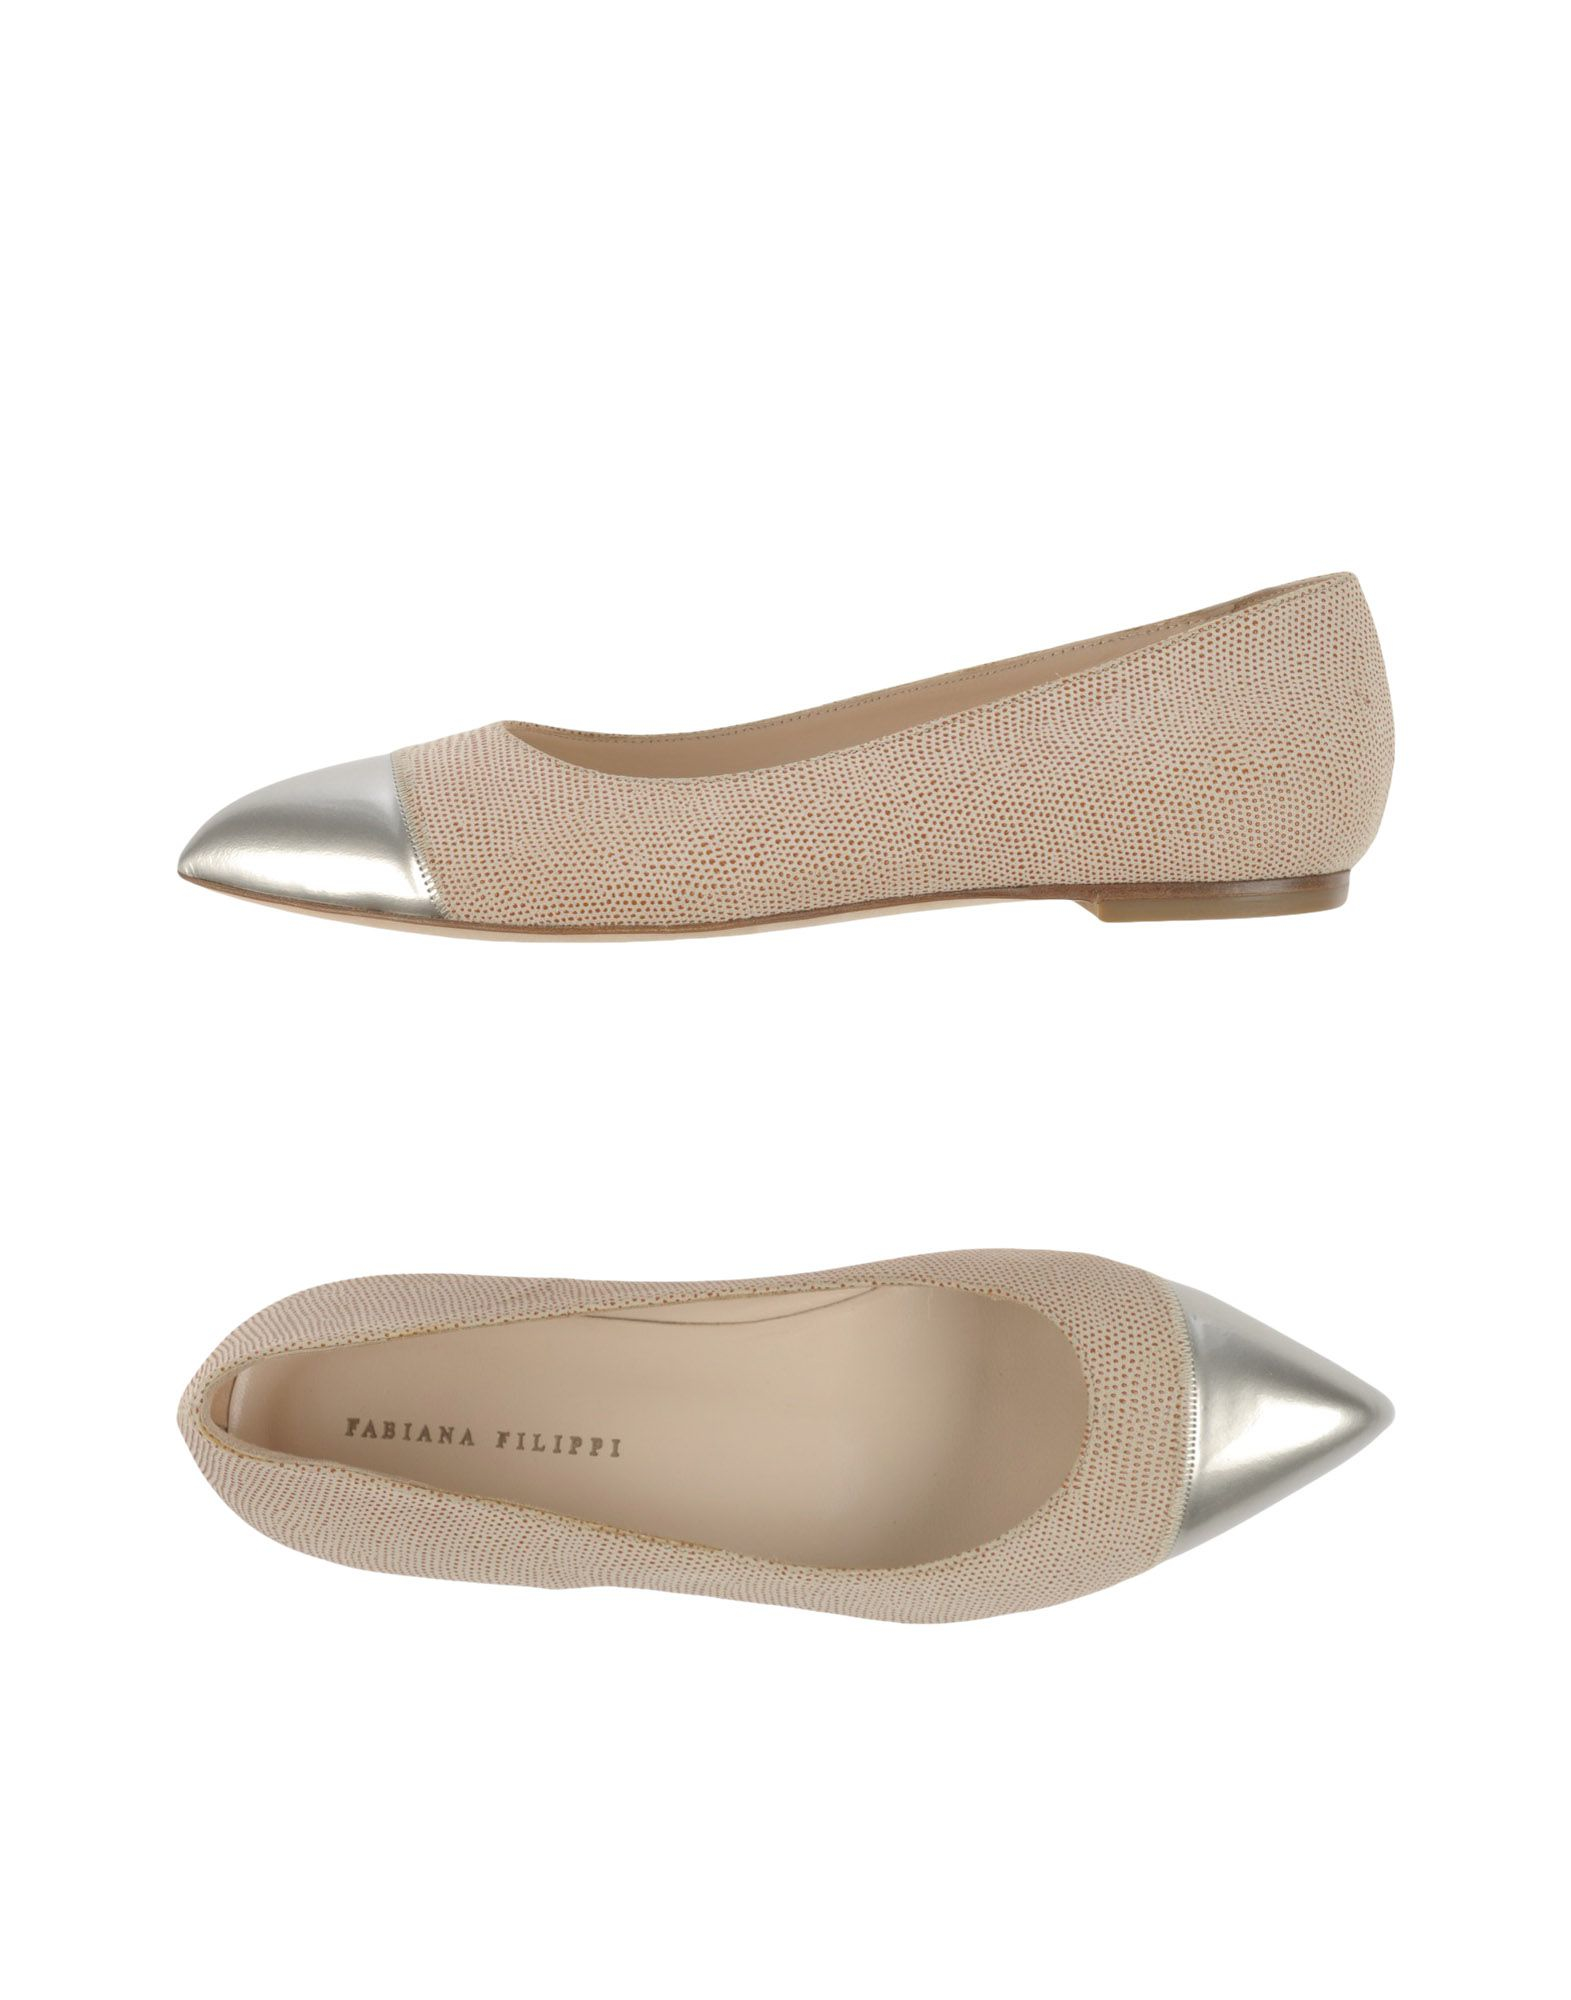 Fabiana Filippi Suede Cap-Toe Espadrilles discount fashionable clearance with mastercard free shipping discounts new styles cheap price t3nm6oAT